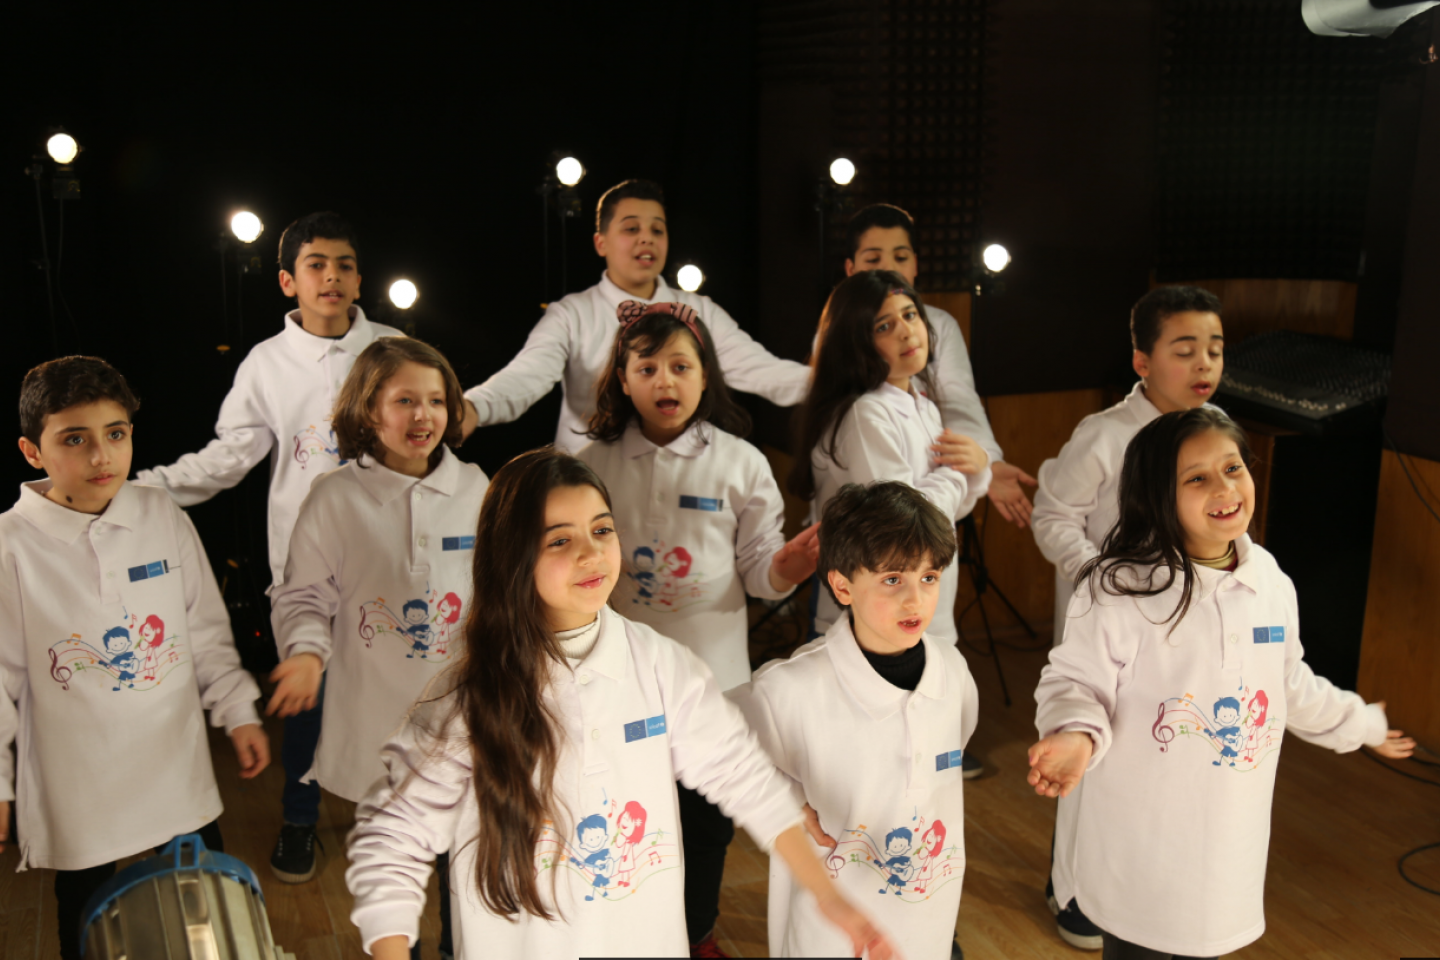 On the eighth anniversary of the war in Syria, UNICEF re-produced 11 children's songs produced in 1976 to be performed by children from Syria and neighboring countries. These songs are some of the region's favorites. They were written by the artist Elias Rahbani during the war in Lebanon.